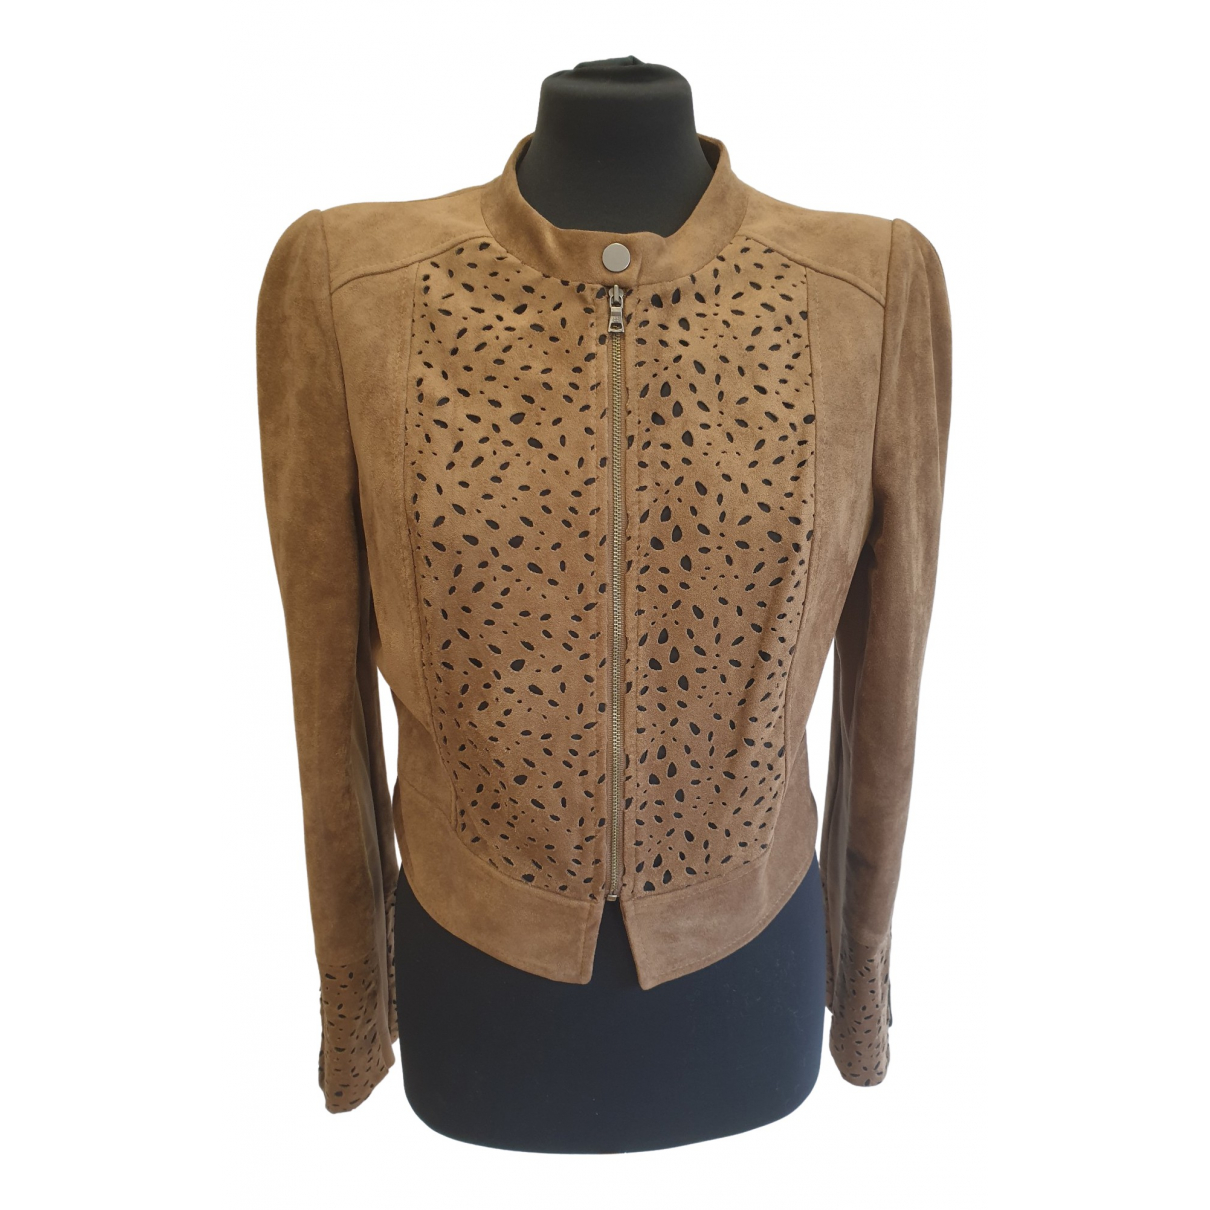 Bcbg Max Azria \N Brown jacket for Women L International